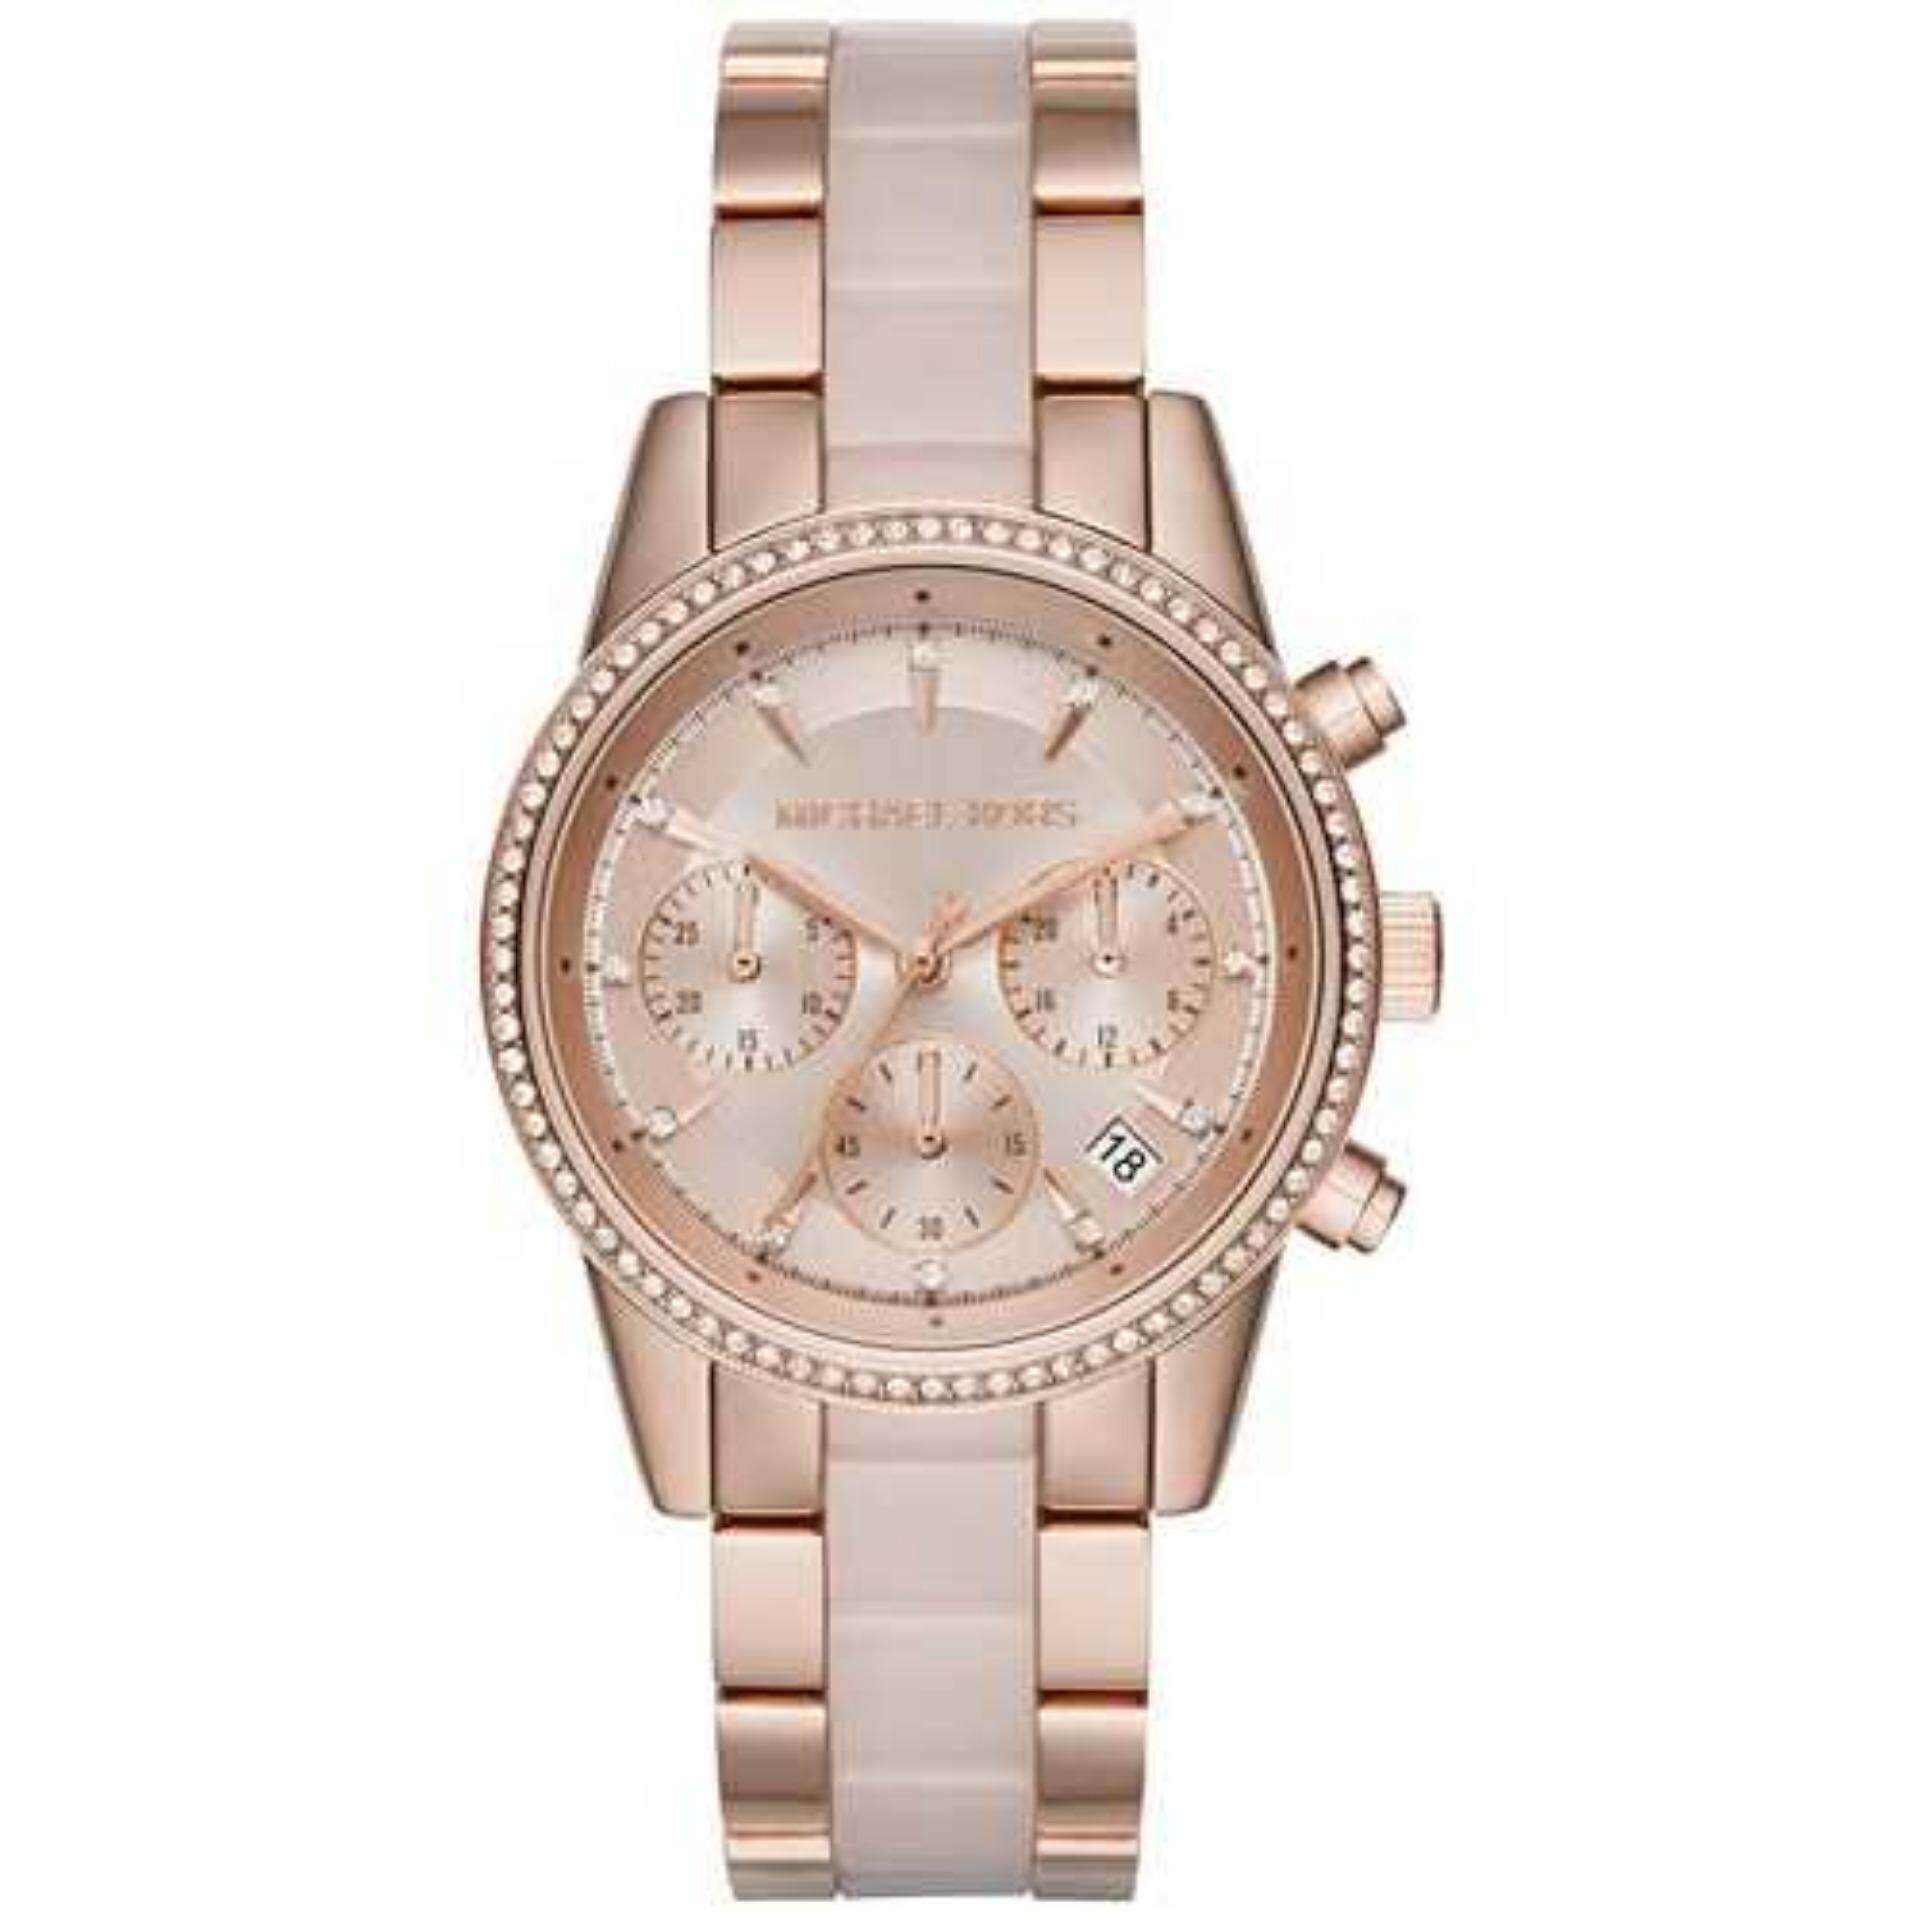 tortue aren t time arent gold s transformed insulting white pink watches that small womens top copy women five by ten model cartier watch and diamonds